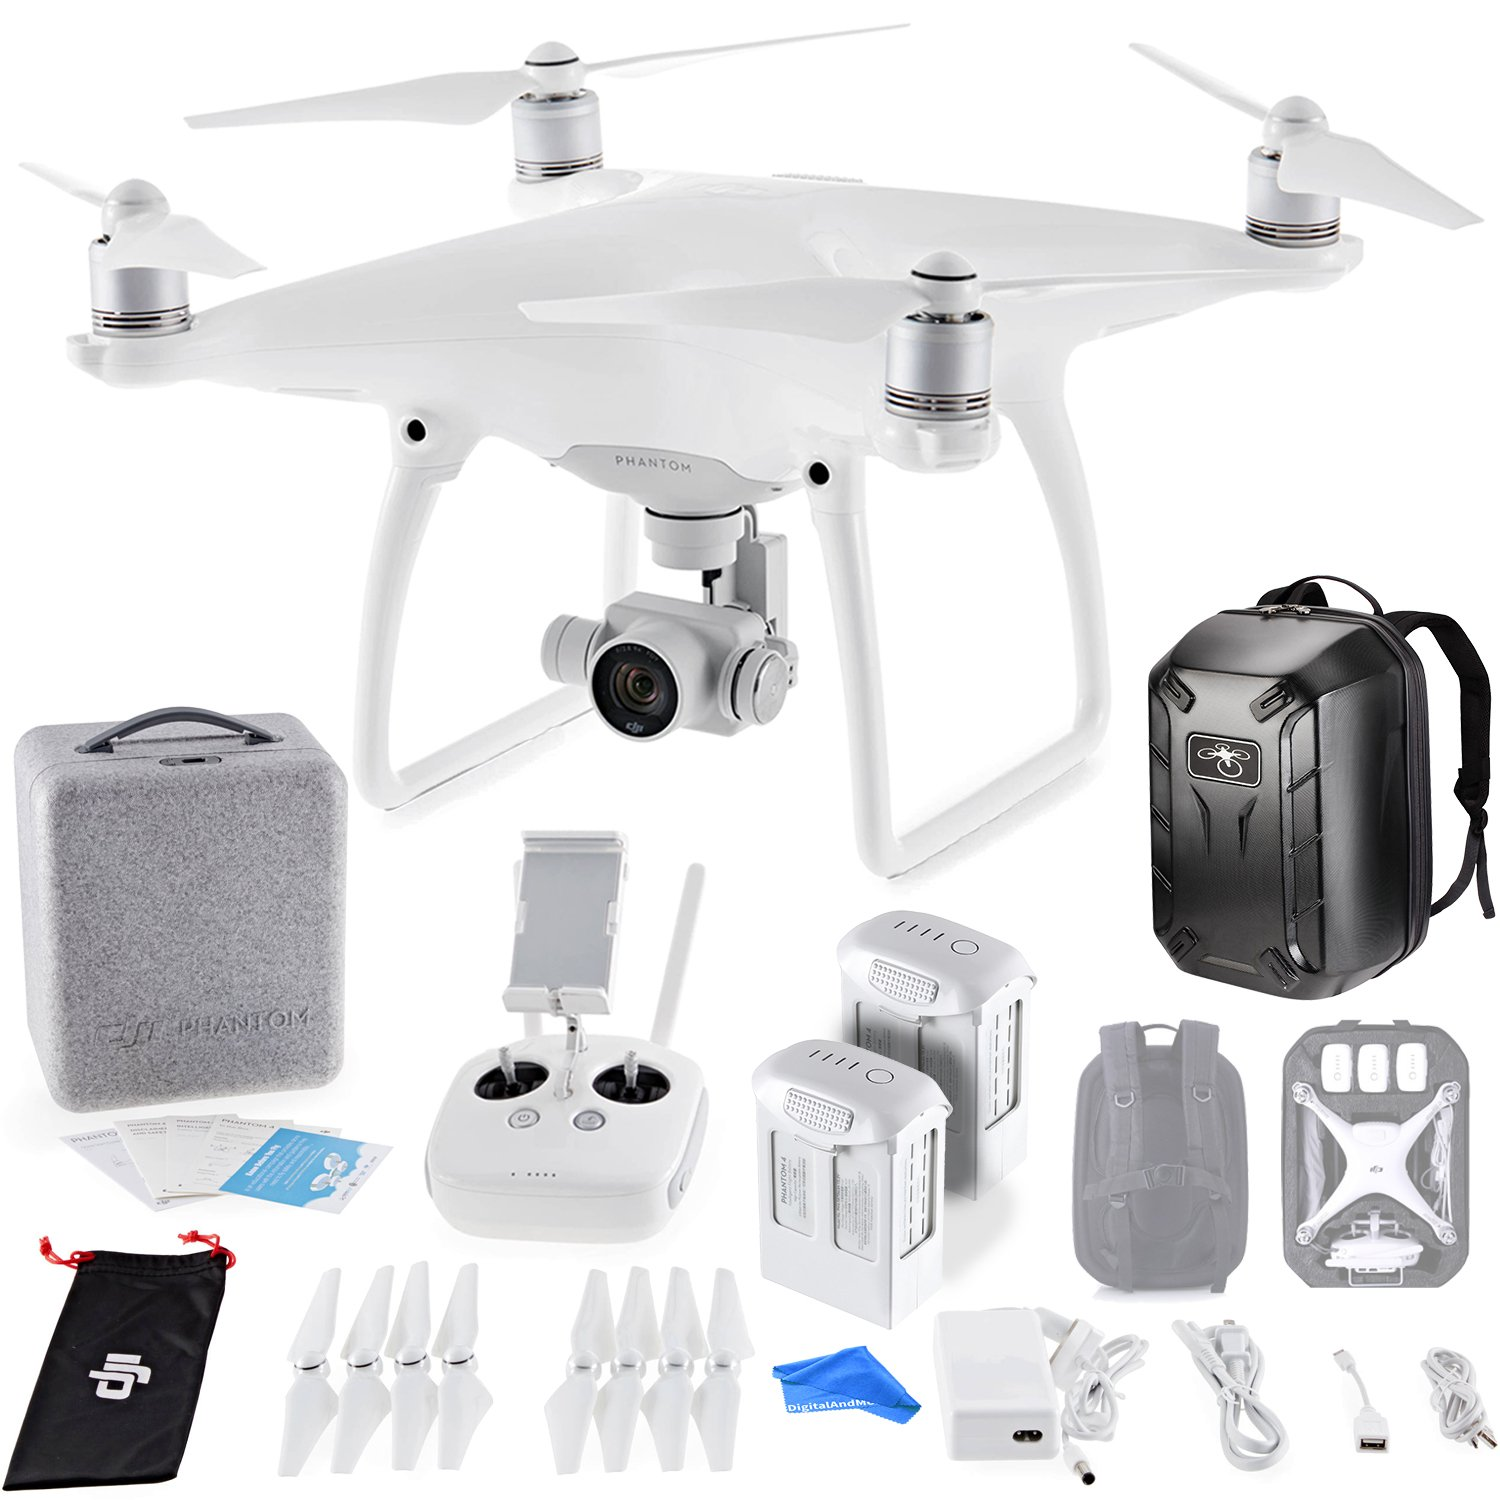 DJI Phantom 4 Quadcopter Drone w/ Hardshell Backpack + Spare...